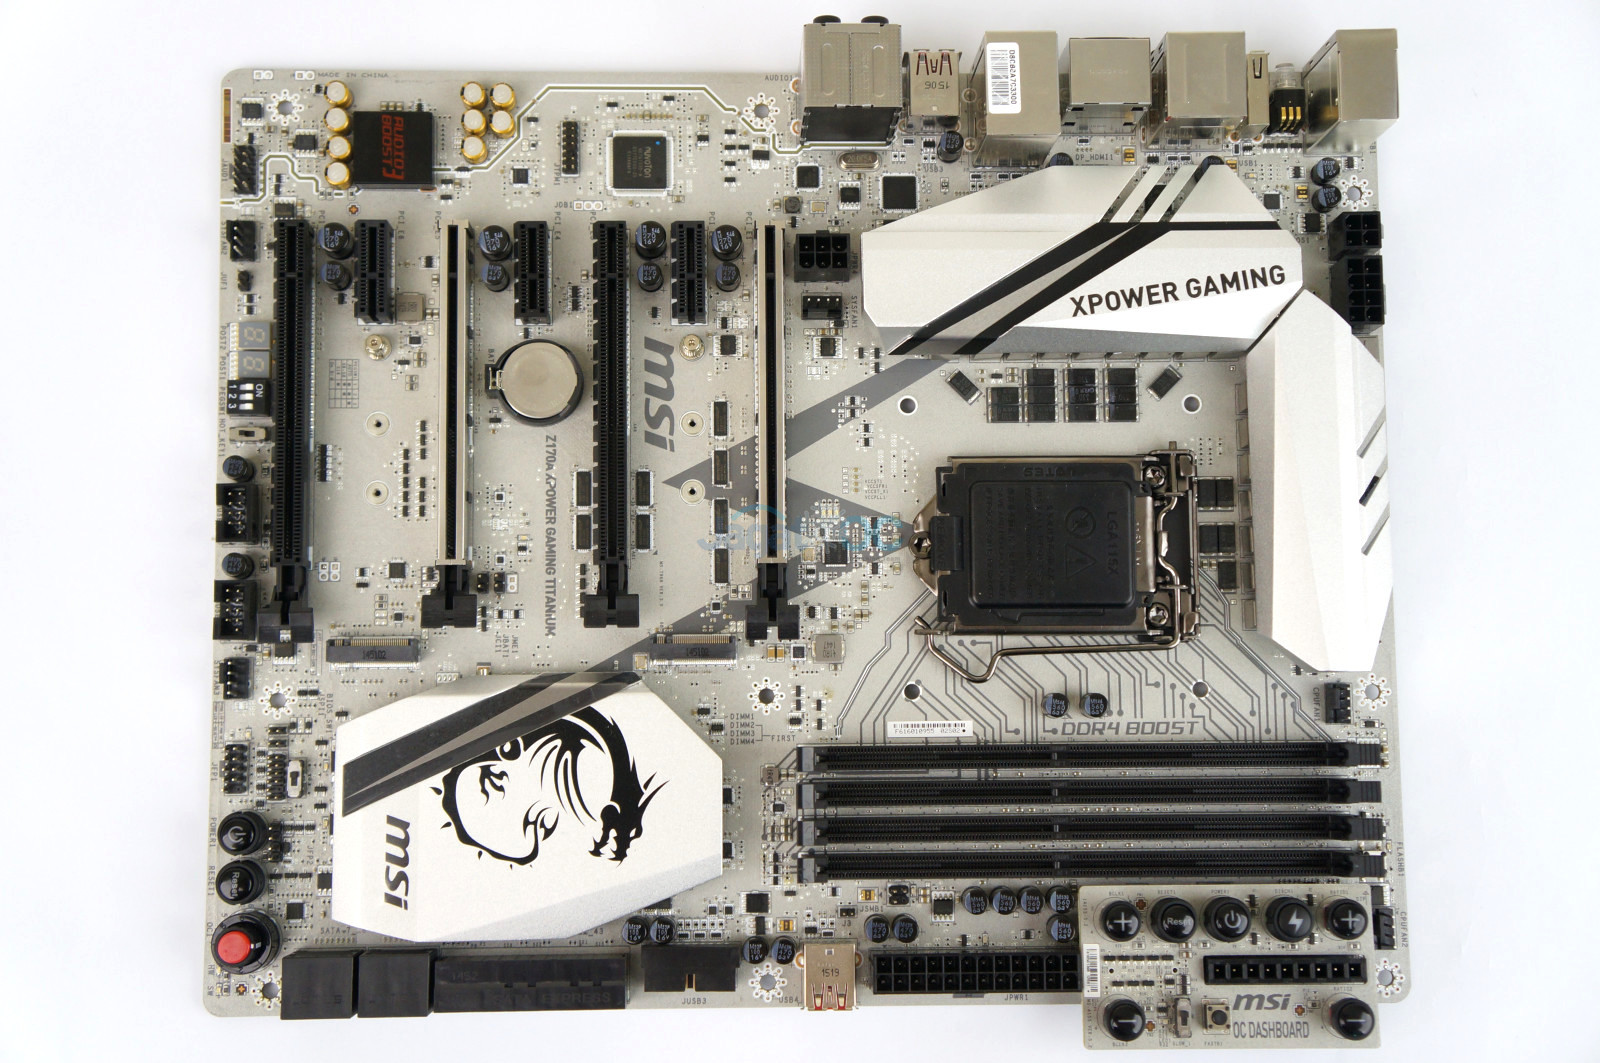 Z170A XPOWER GAMING HDs